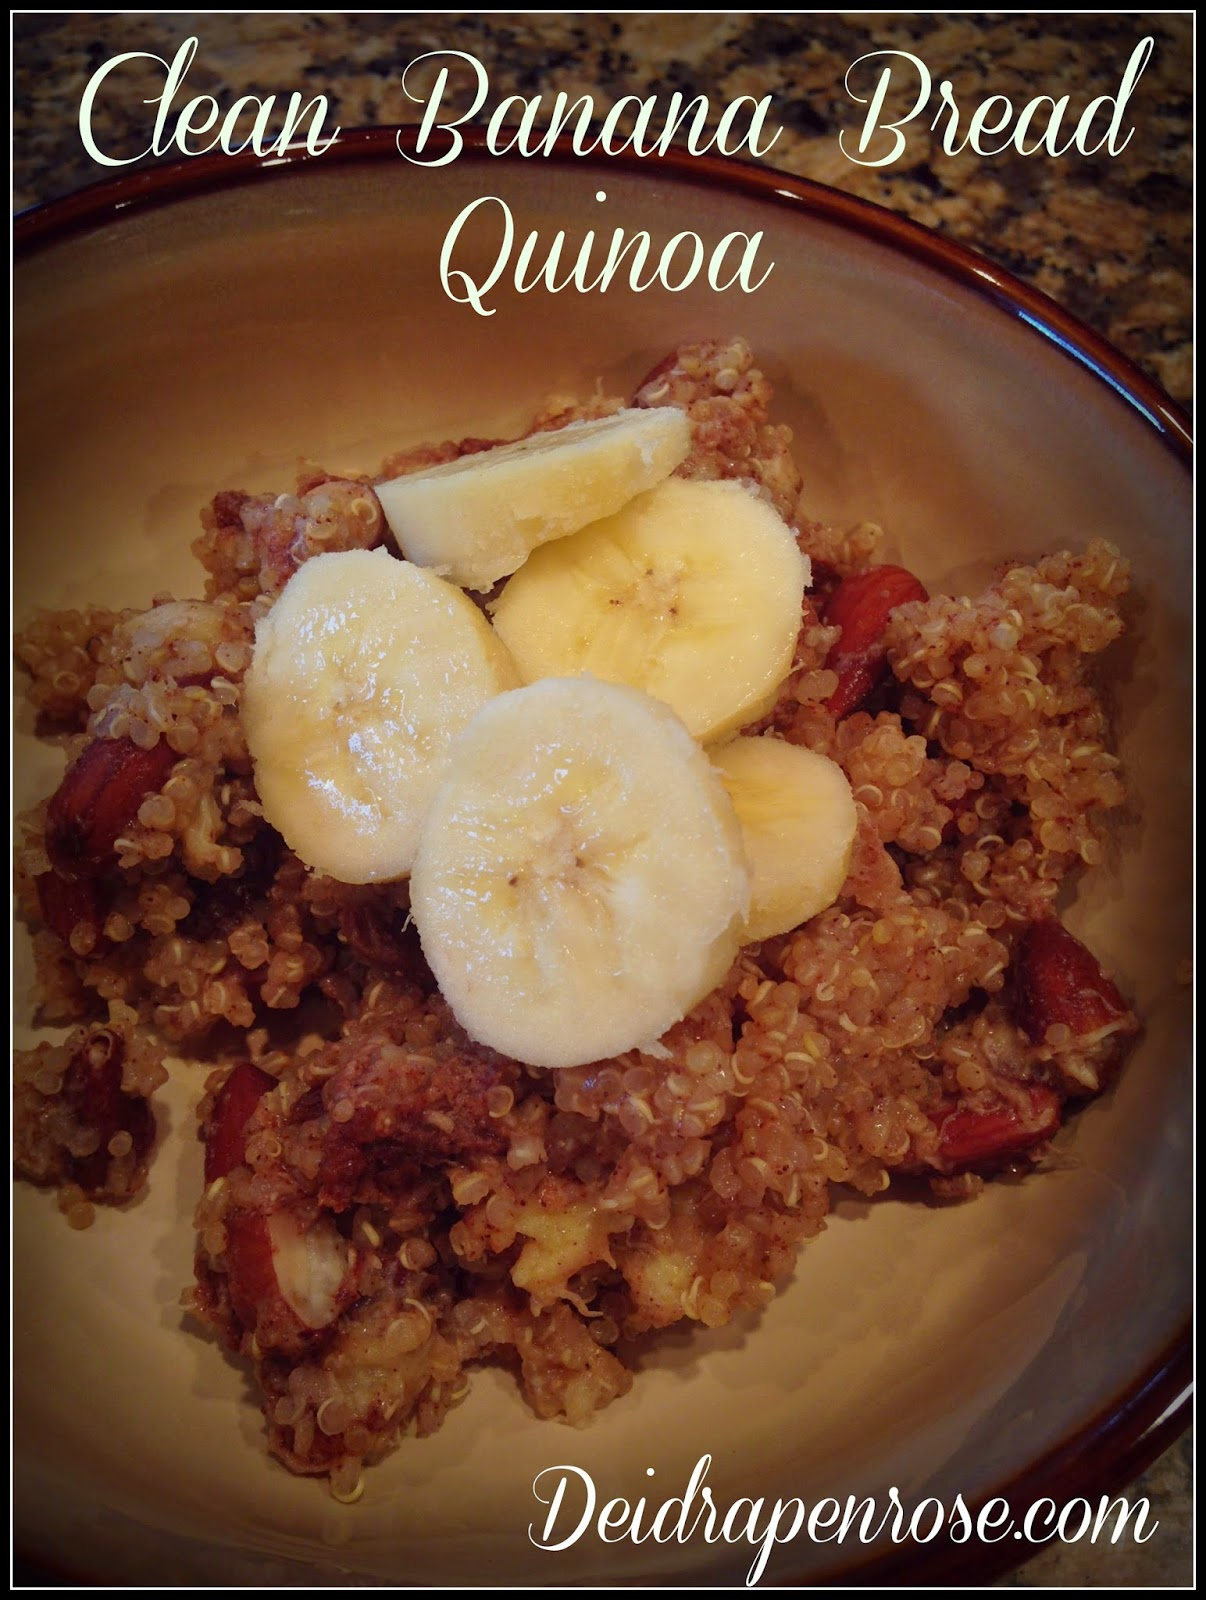 deidra Penrose, clean eating breakfast recipes, banana nut bread, almonds, quinoa, healthy banana bread quinoa, weight loss recipes, NPC figure competitor, easy breakfast recipes,  fitness journey, accountability, power breakfast, top beachbody coach harrisburg, healthy mom, new mom,  healthy nurse and mom, successful fitness coach, nutrition